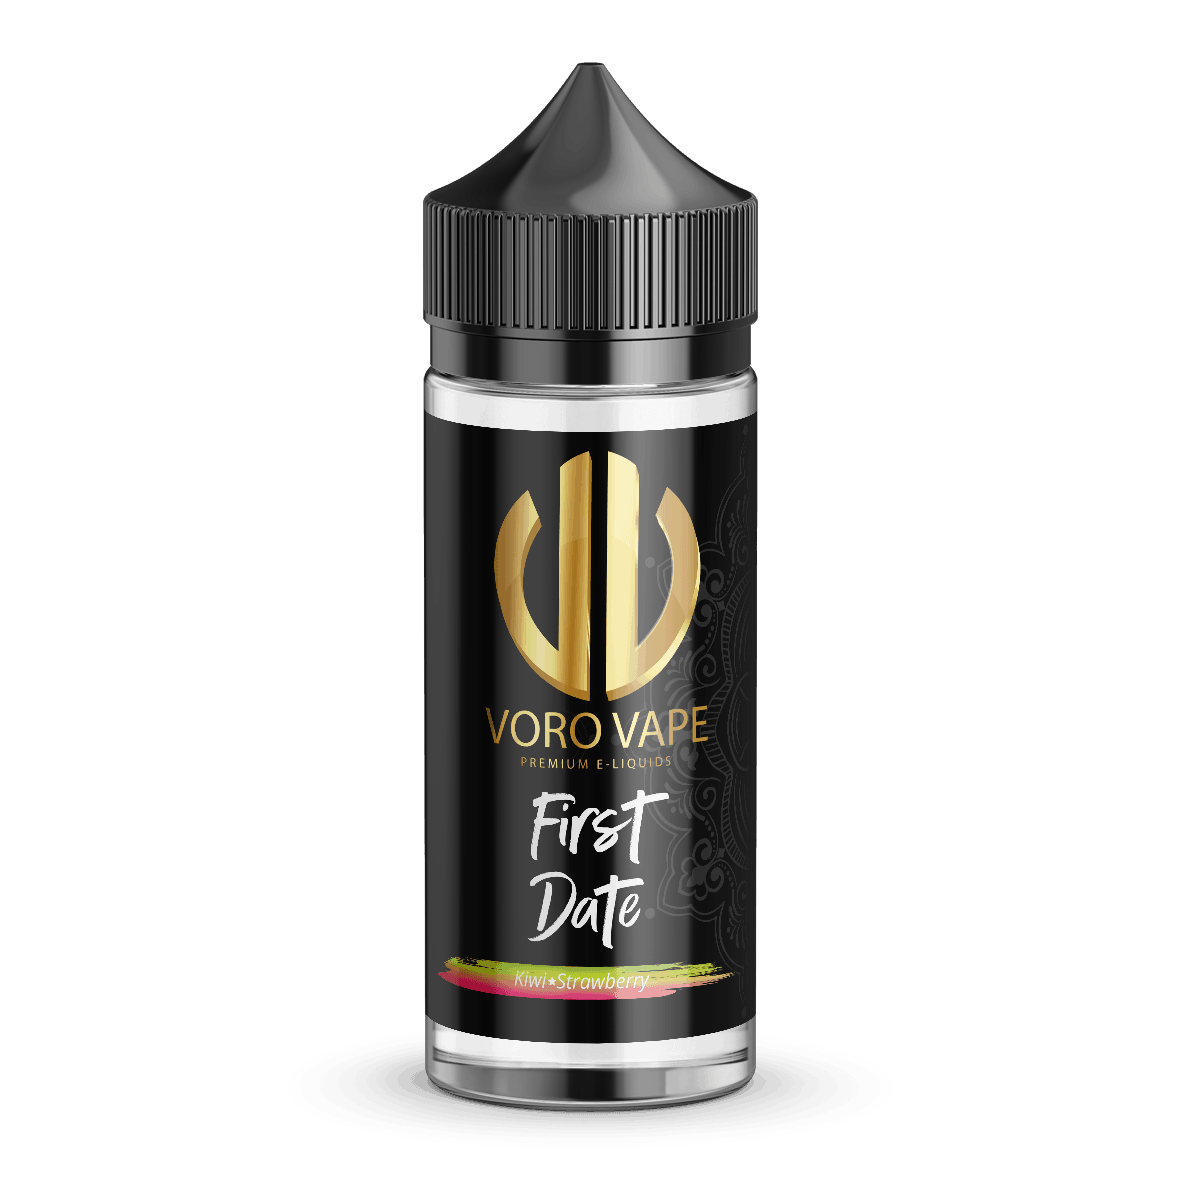 First Date E-Liquid Shortfill by Voro Vape